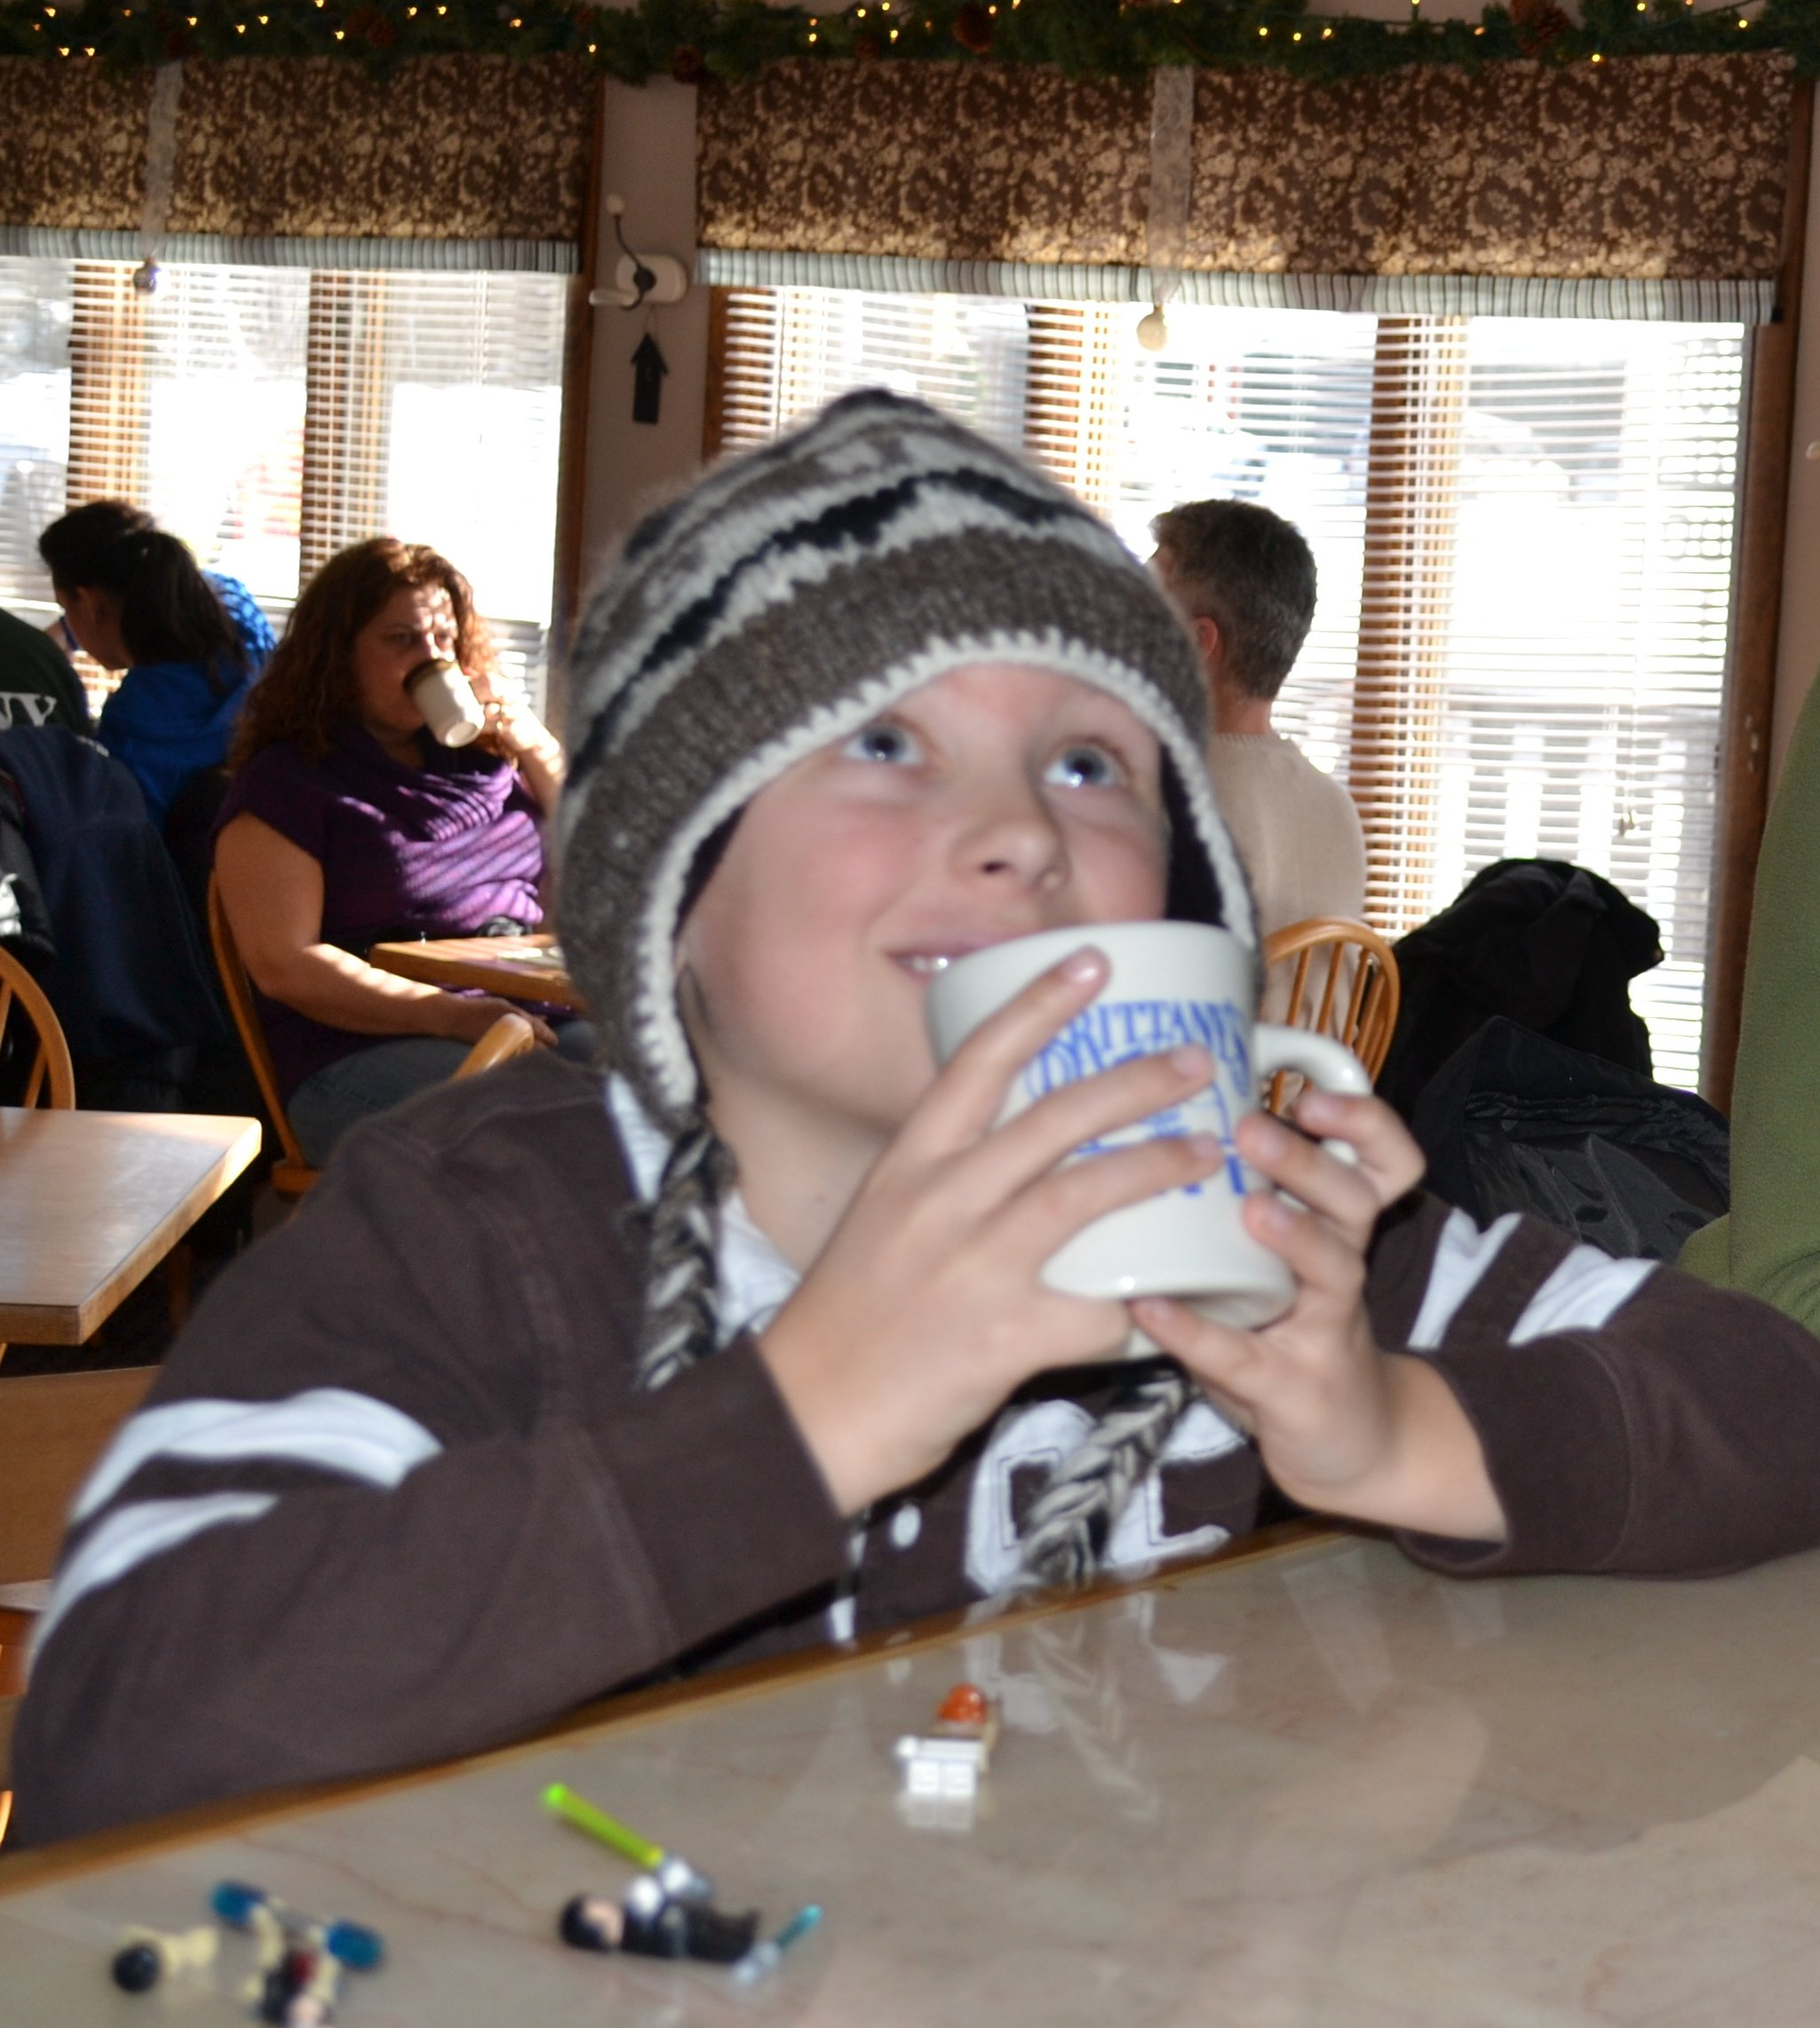 Our friend Jack enjoys a cup of cocoa at Brittany's